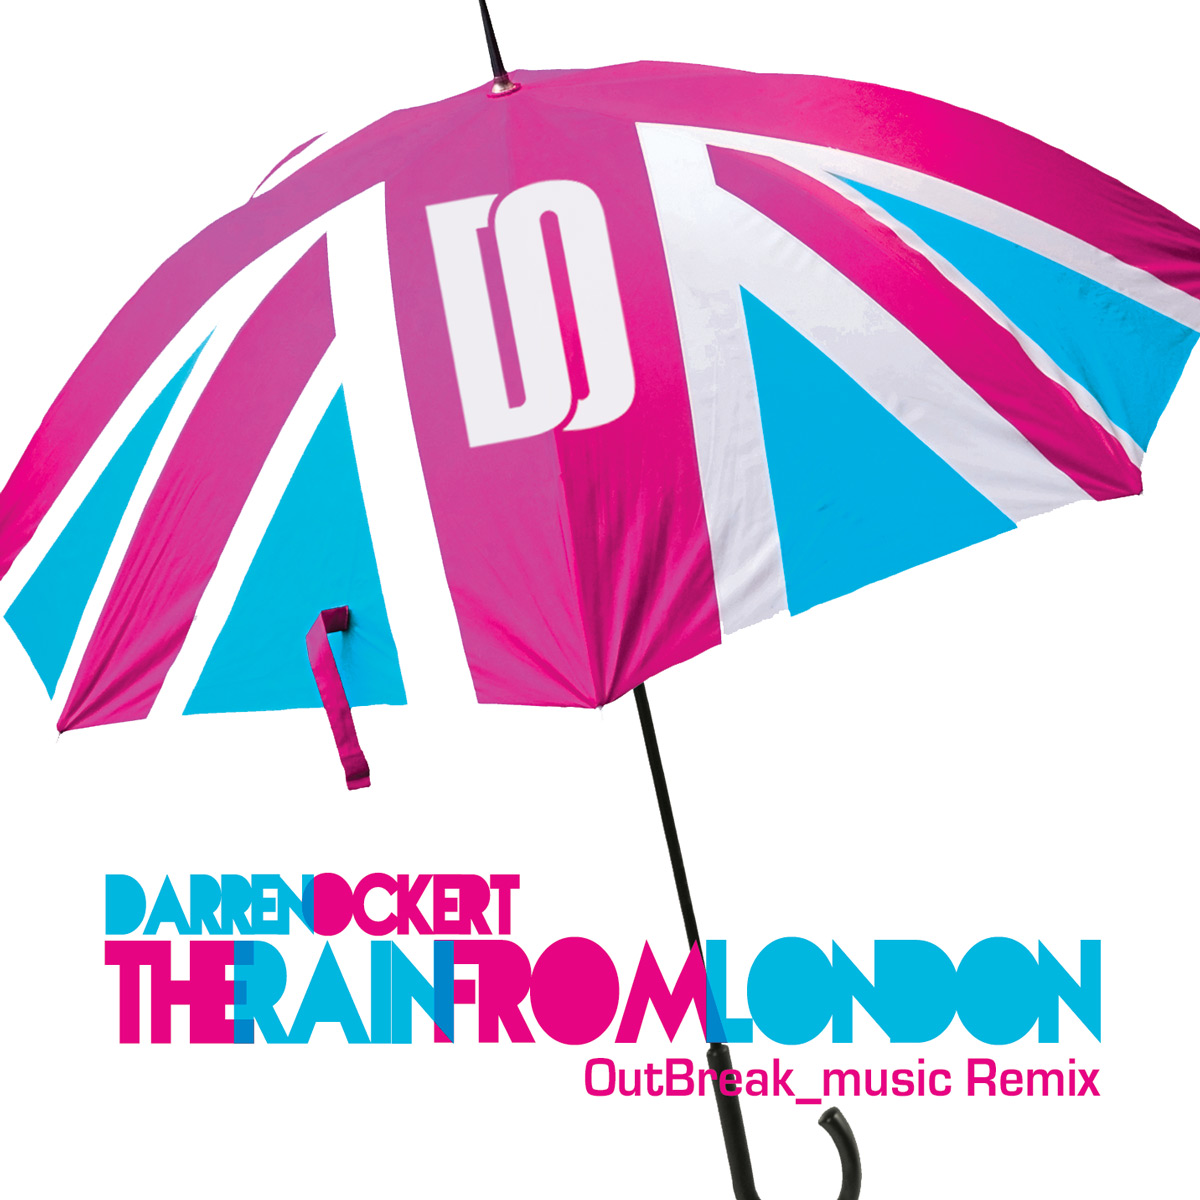 The Rain From London Remix